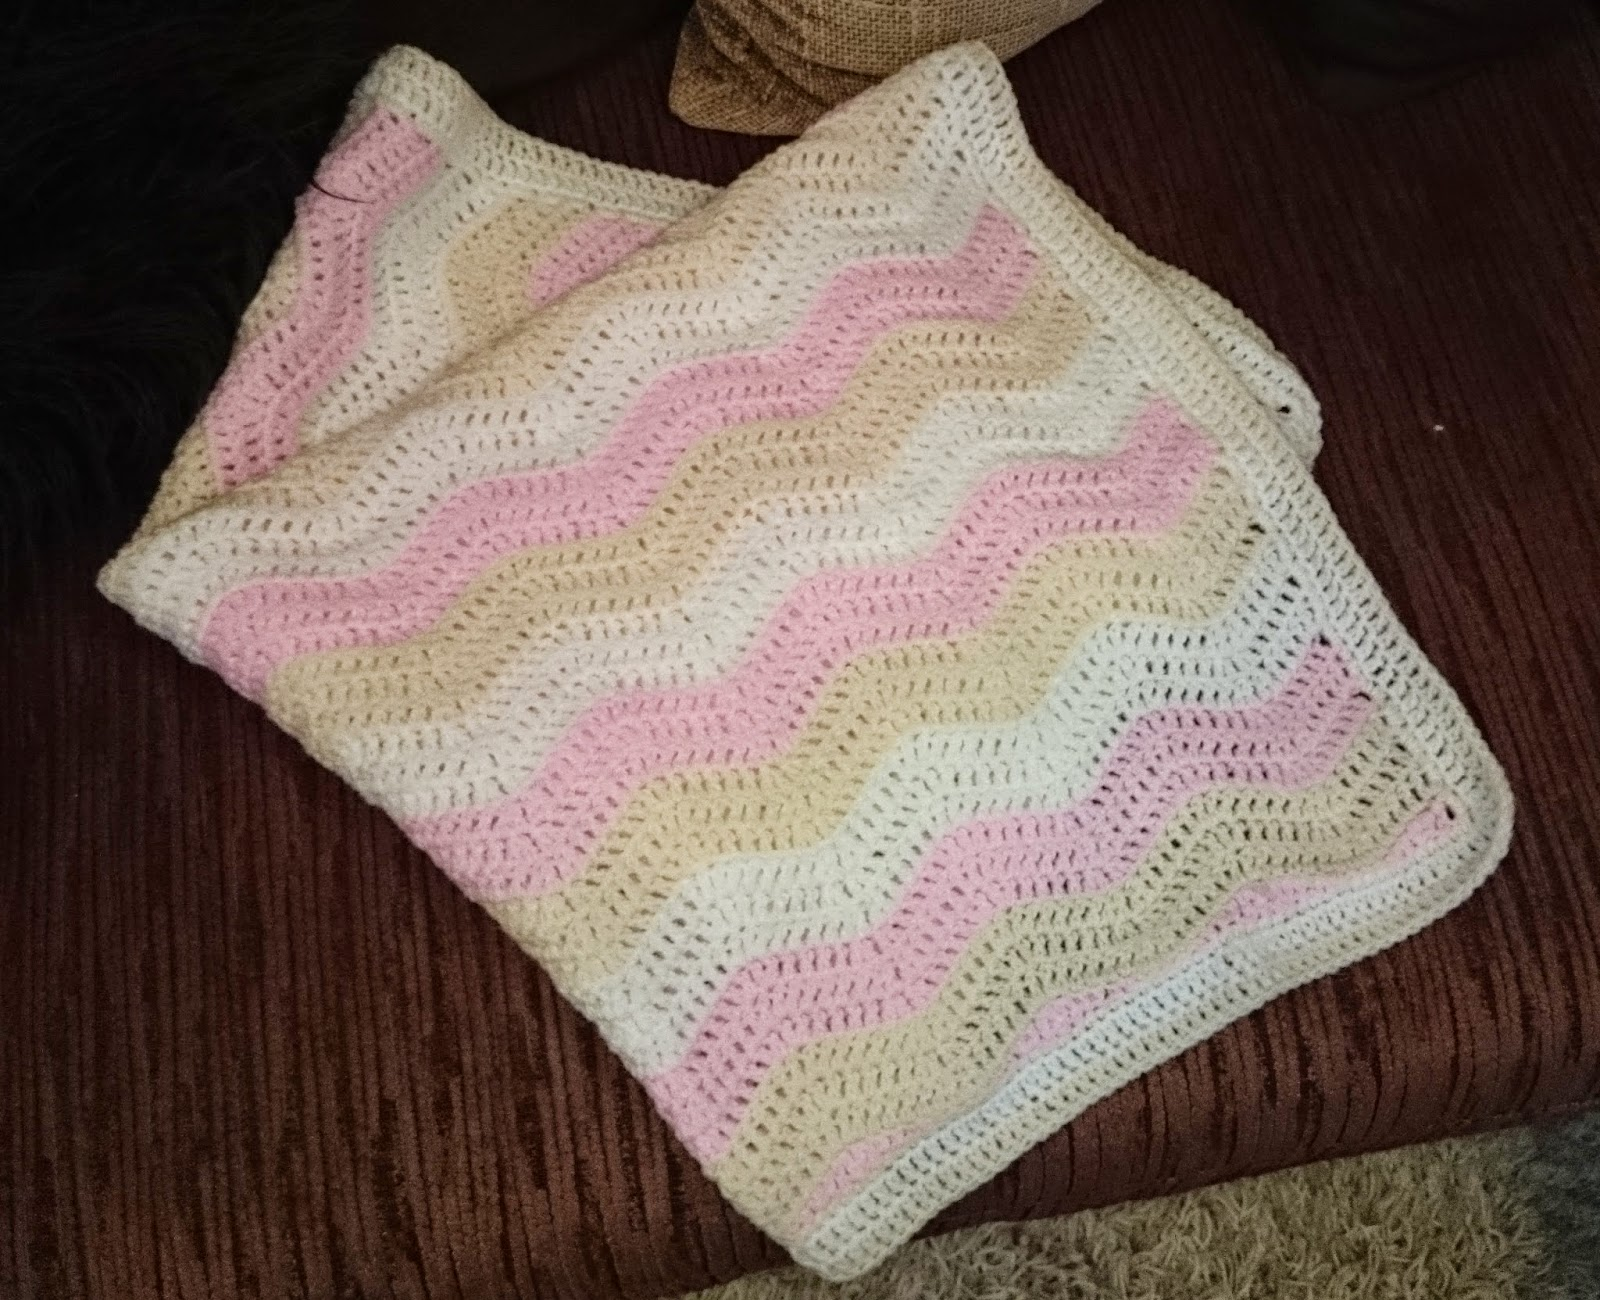 crochet baby ripple wave blanket with border pink white beige